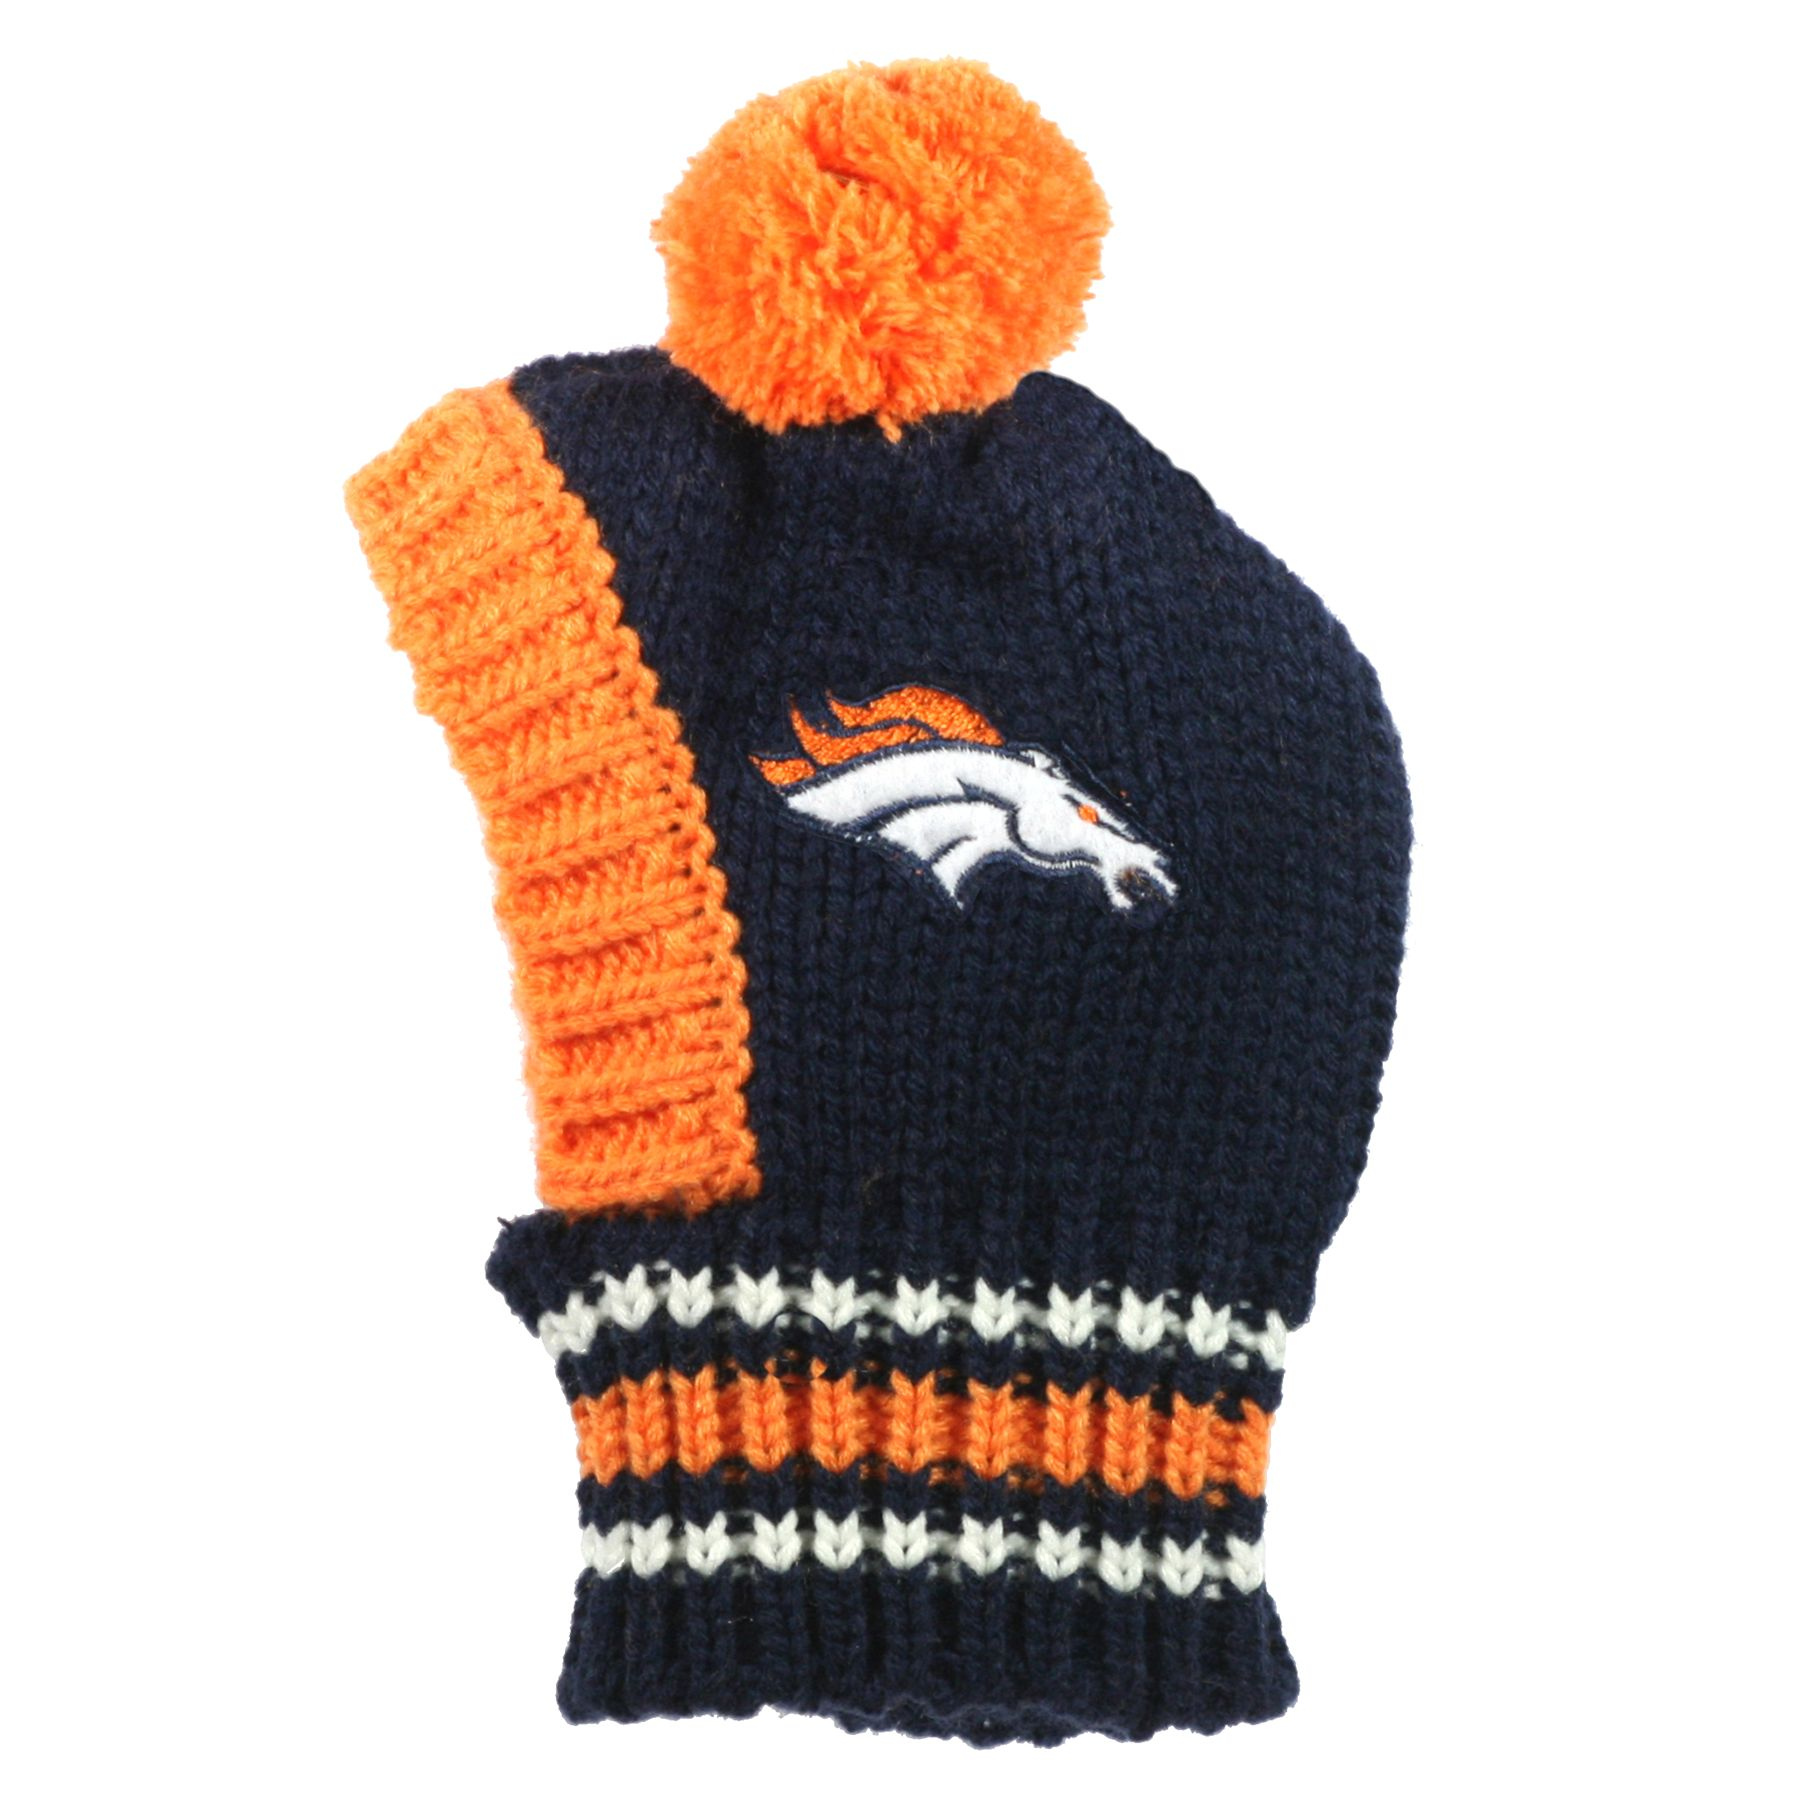 Denver Broncos NFL Knit Hat size: Medium, Hip Doggie 5230406